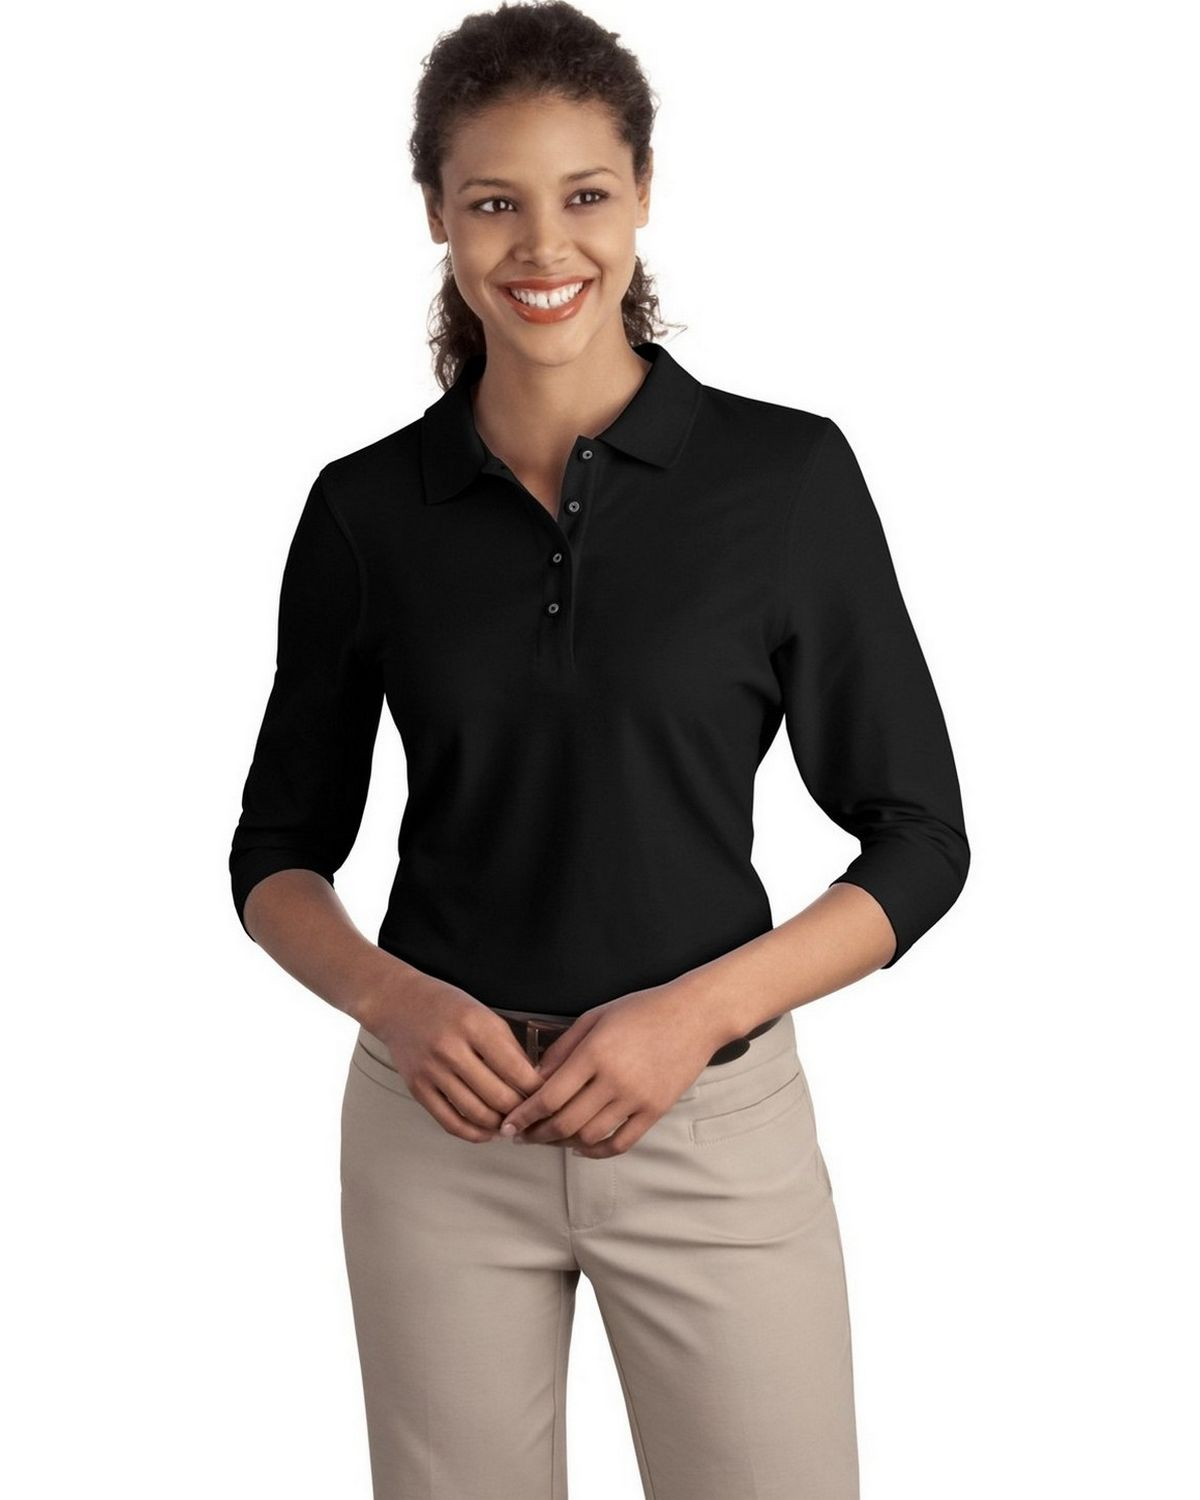 Port Authority L562 Women's Silk Touch 3/4-Sleeve Polo - Black - XS #silk